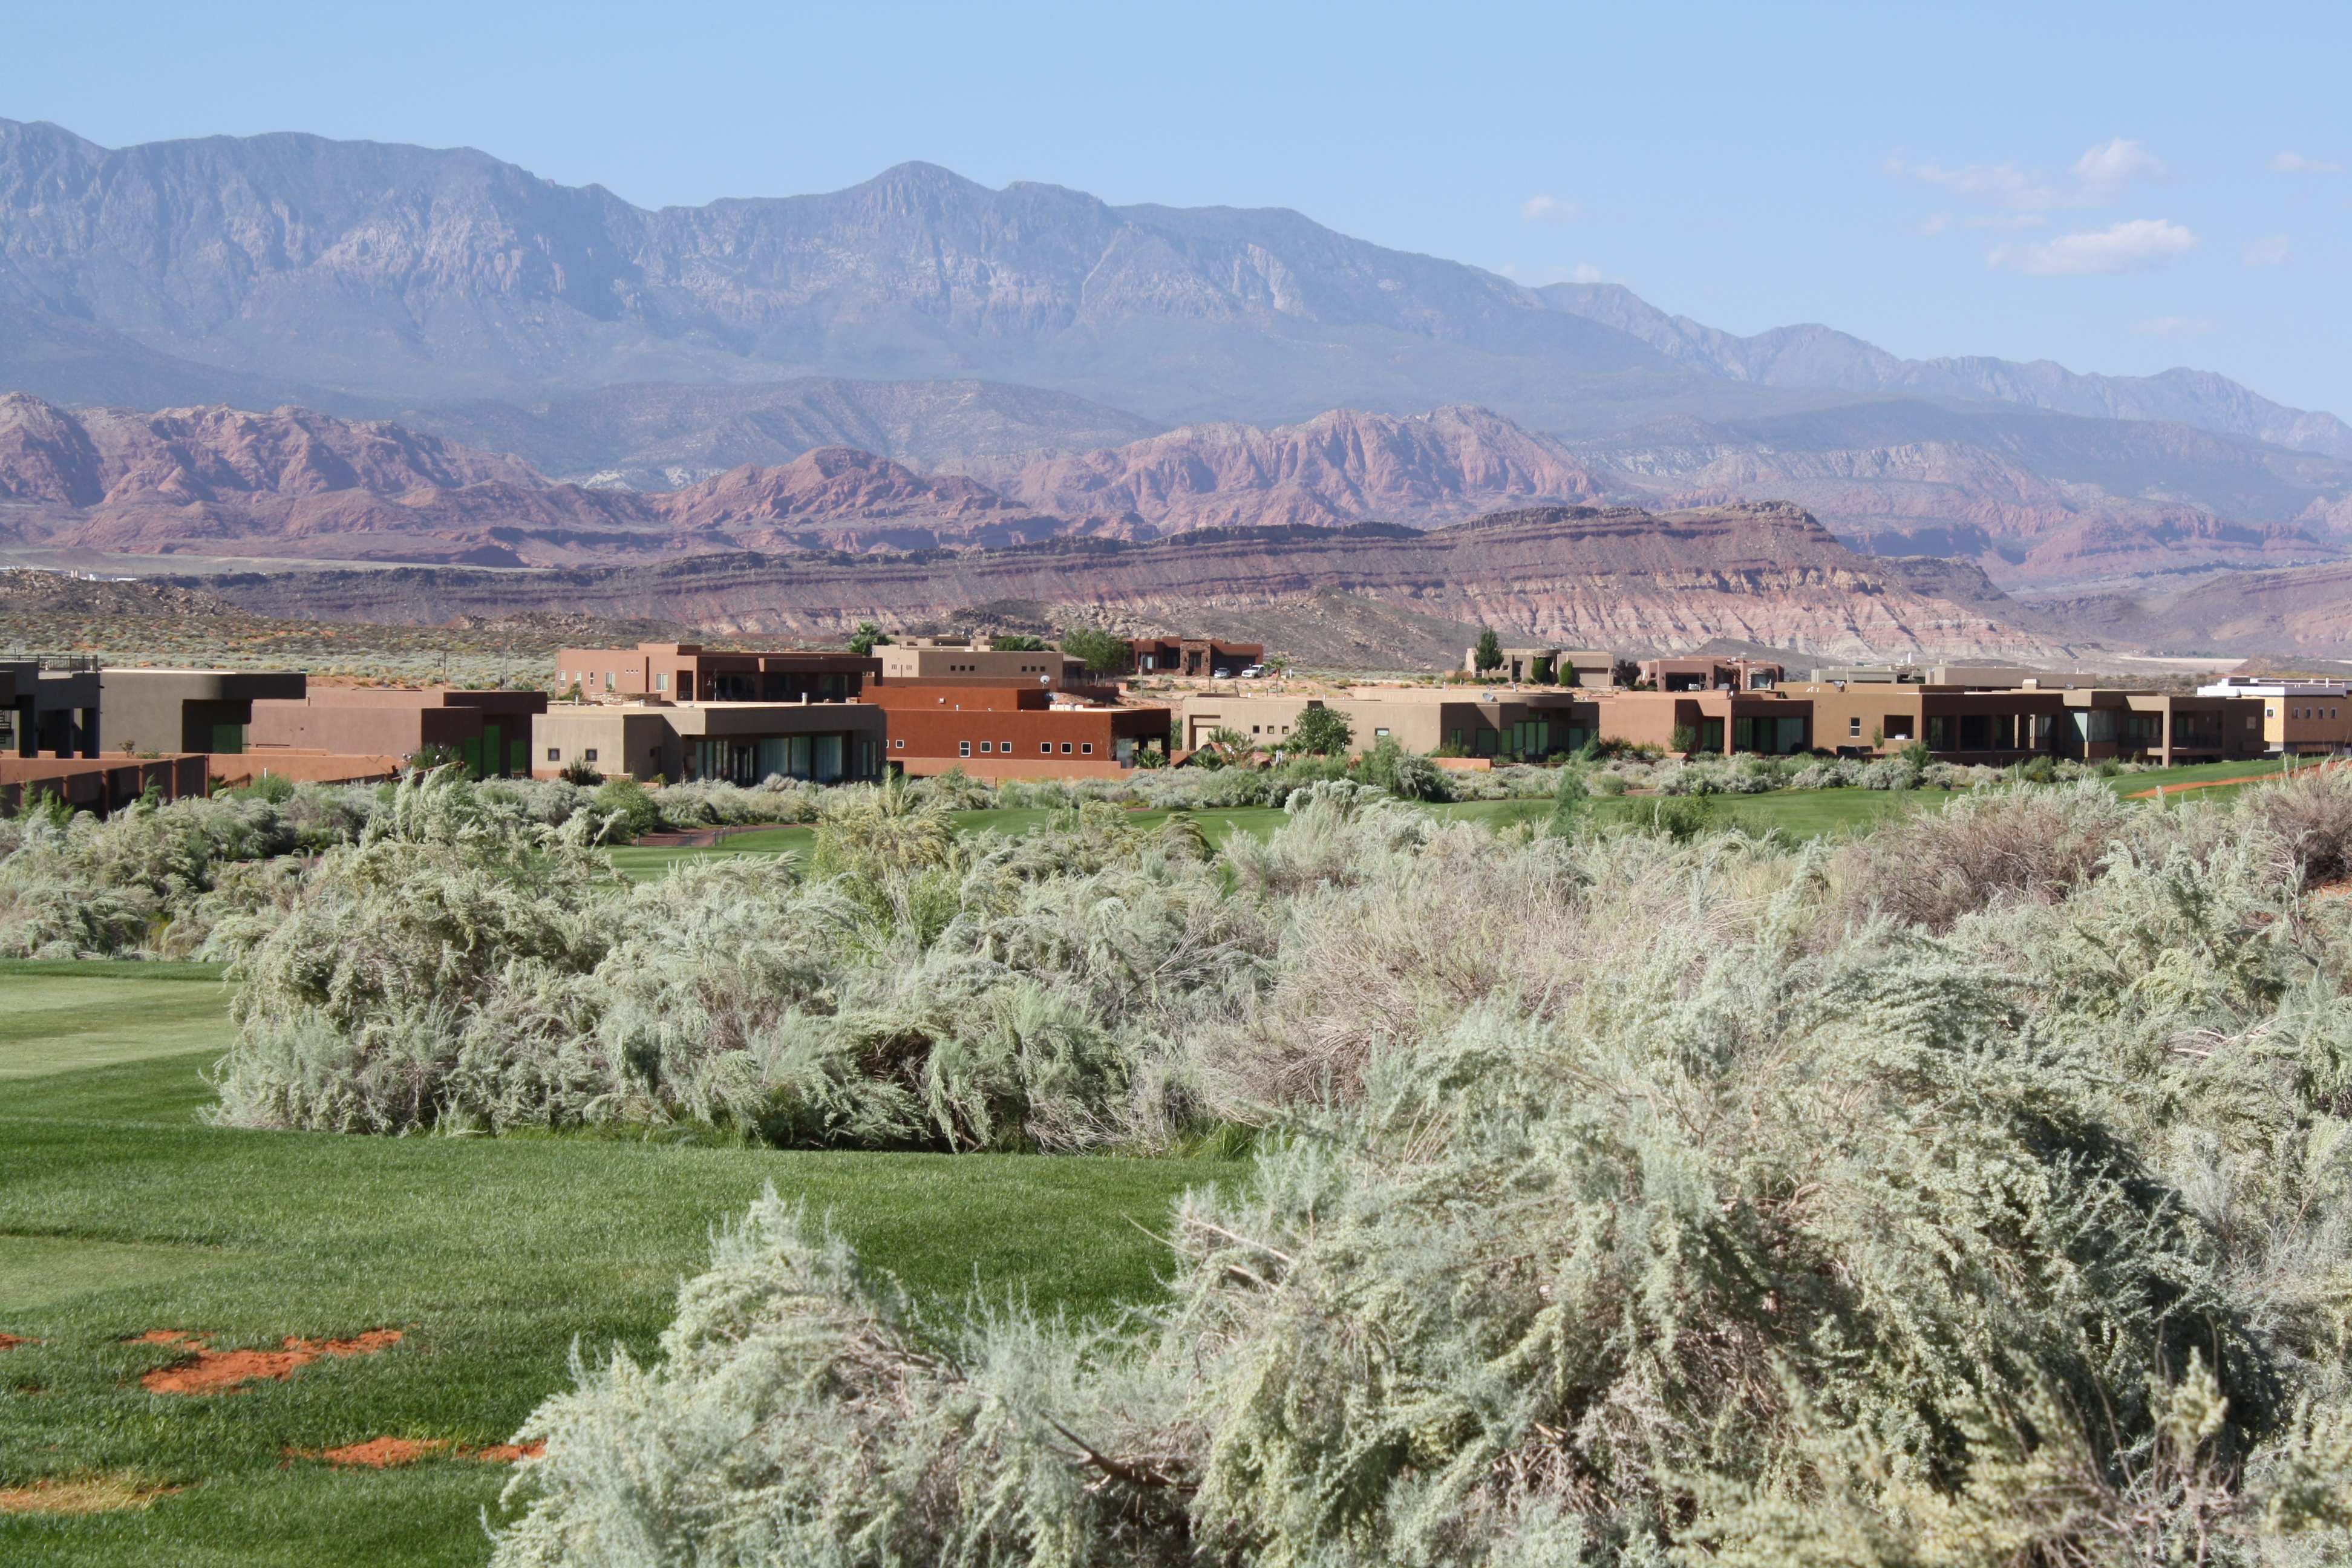 Sand Hollow Resort, located just west of the entrance to Sand Hollow State Park, is another hot spot for vacation rentals within Hurricane, Utah, Sept. 8, 2016 | Photo by Reuben Wadsworth, St. George News